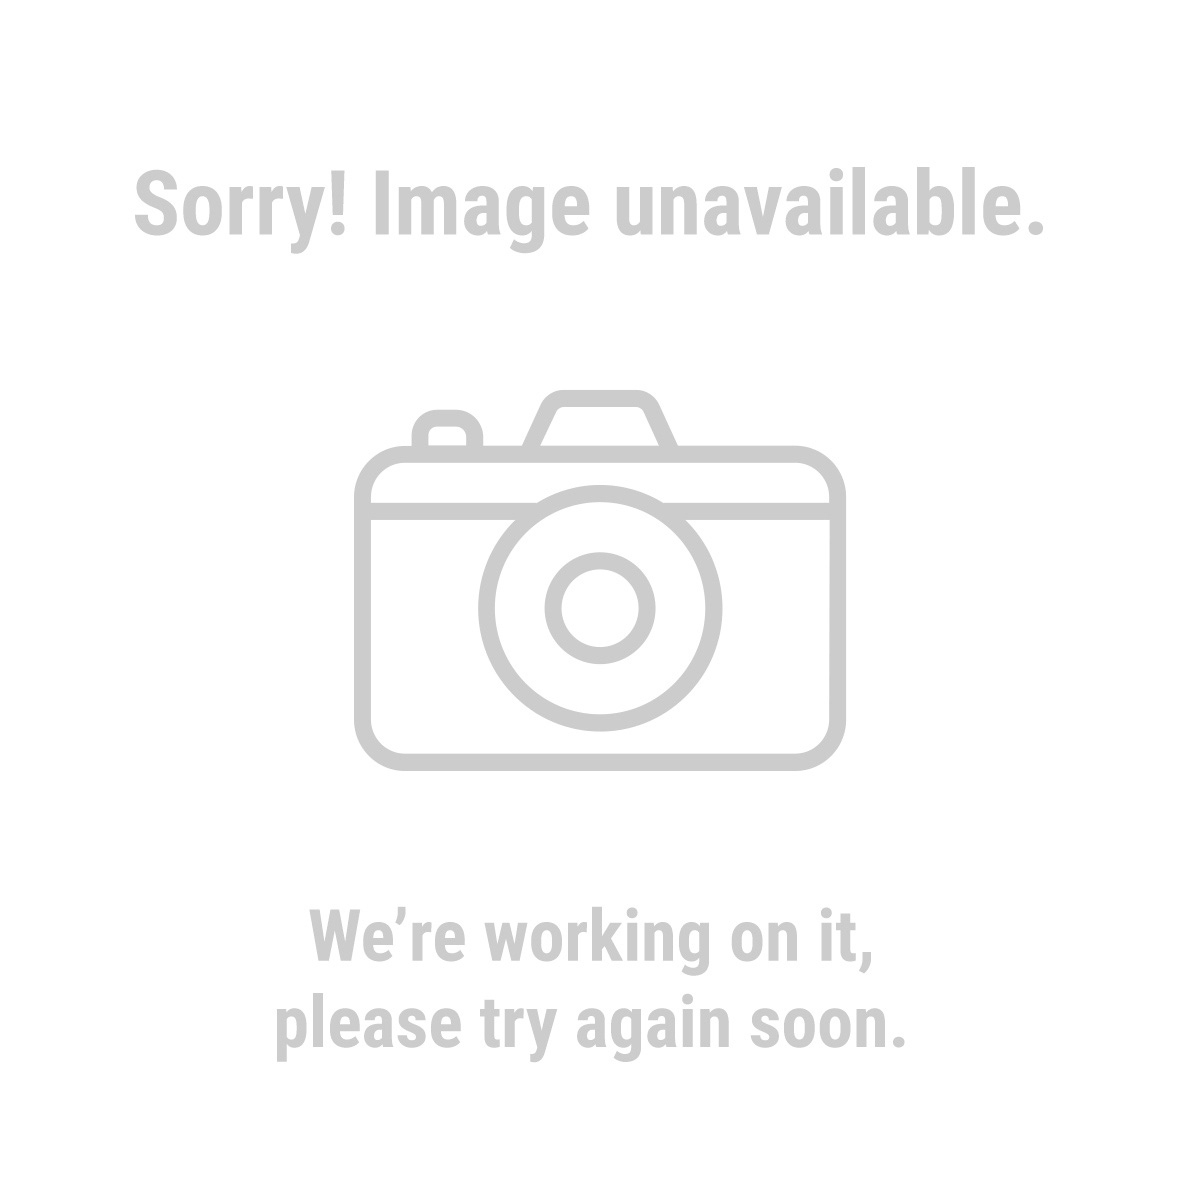 Wire and cable stripper coaxial cable compression tool greentooth Images